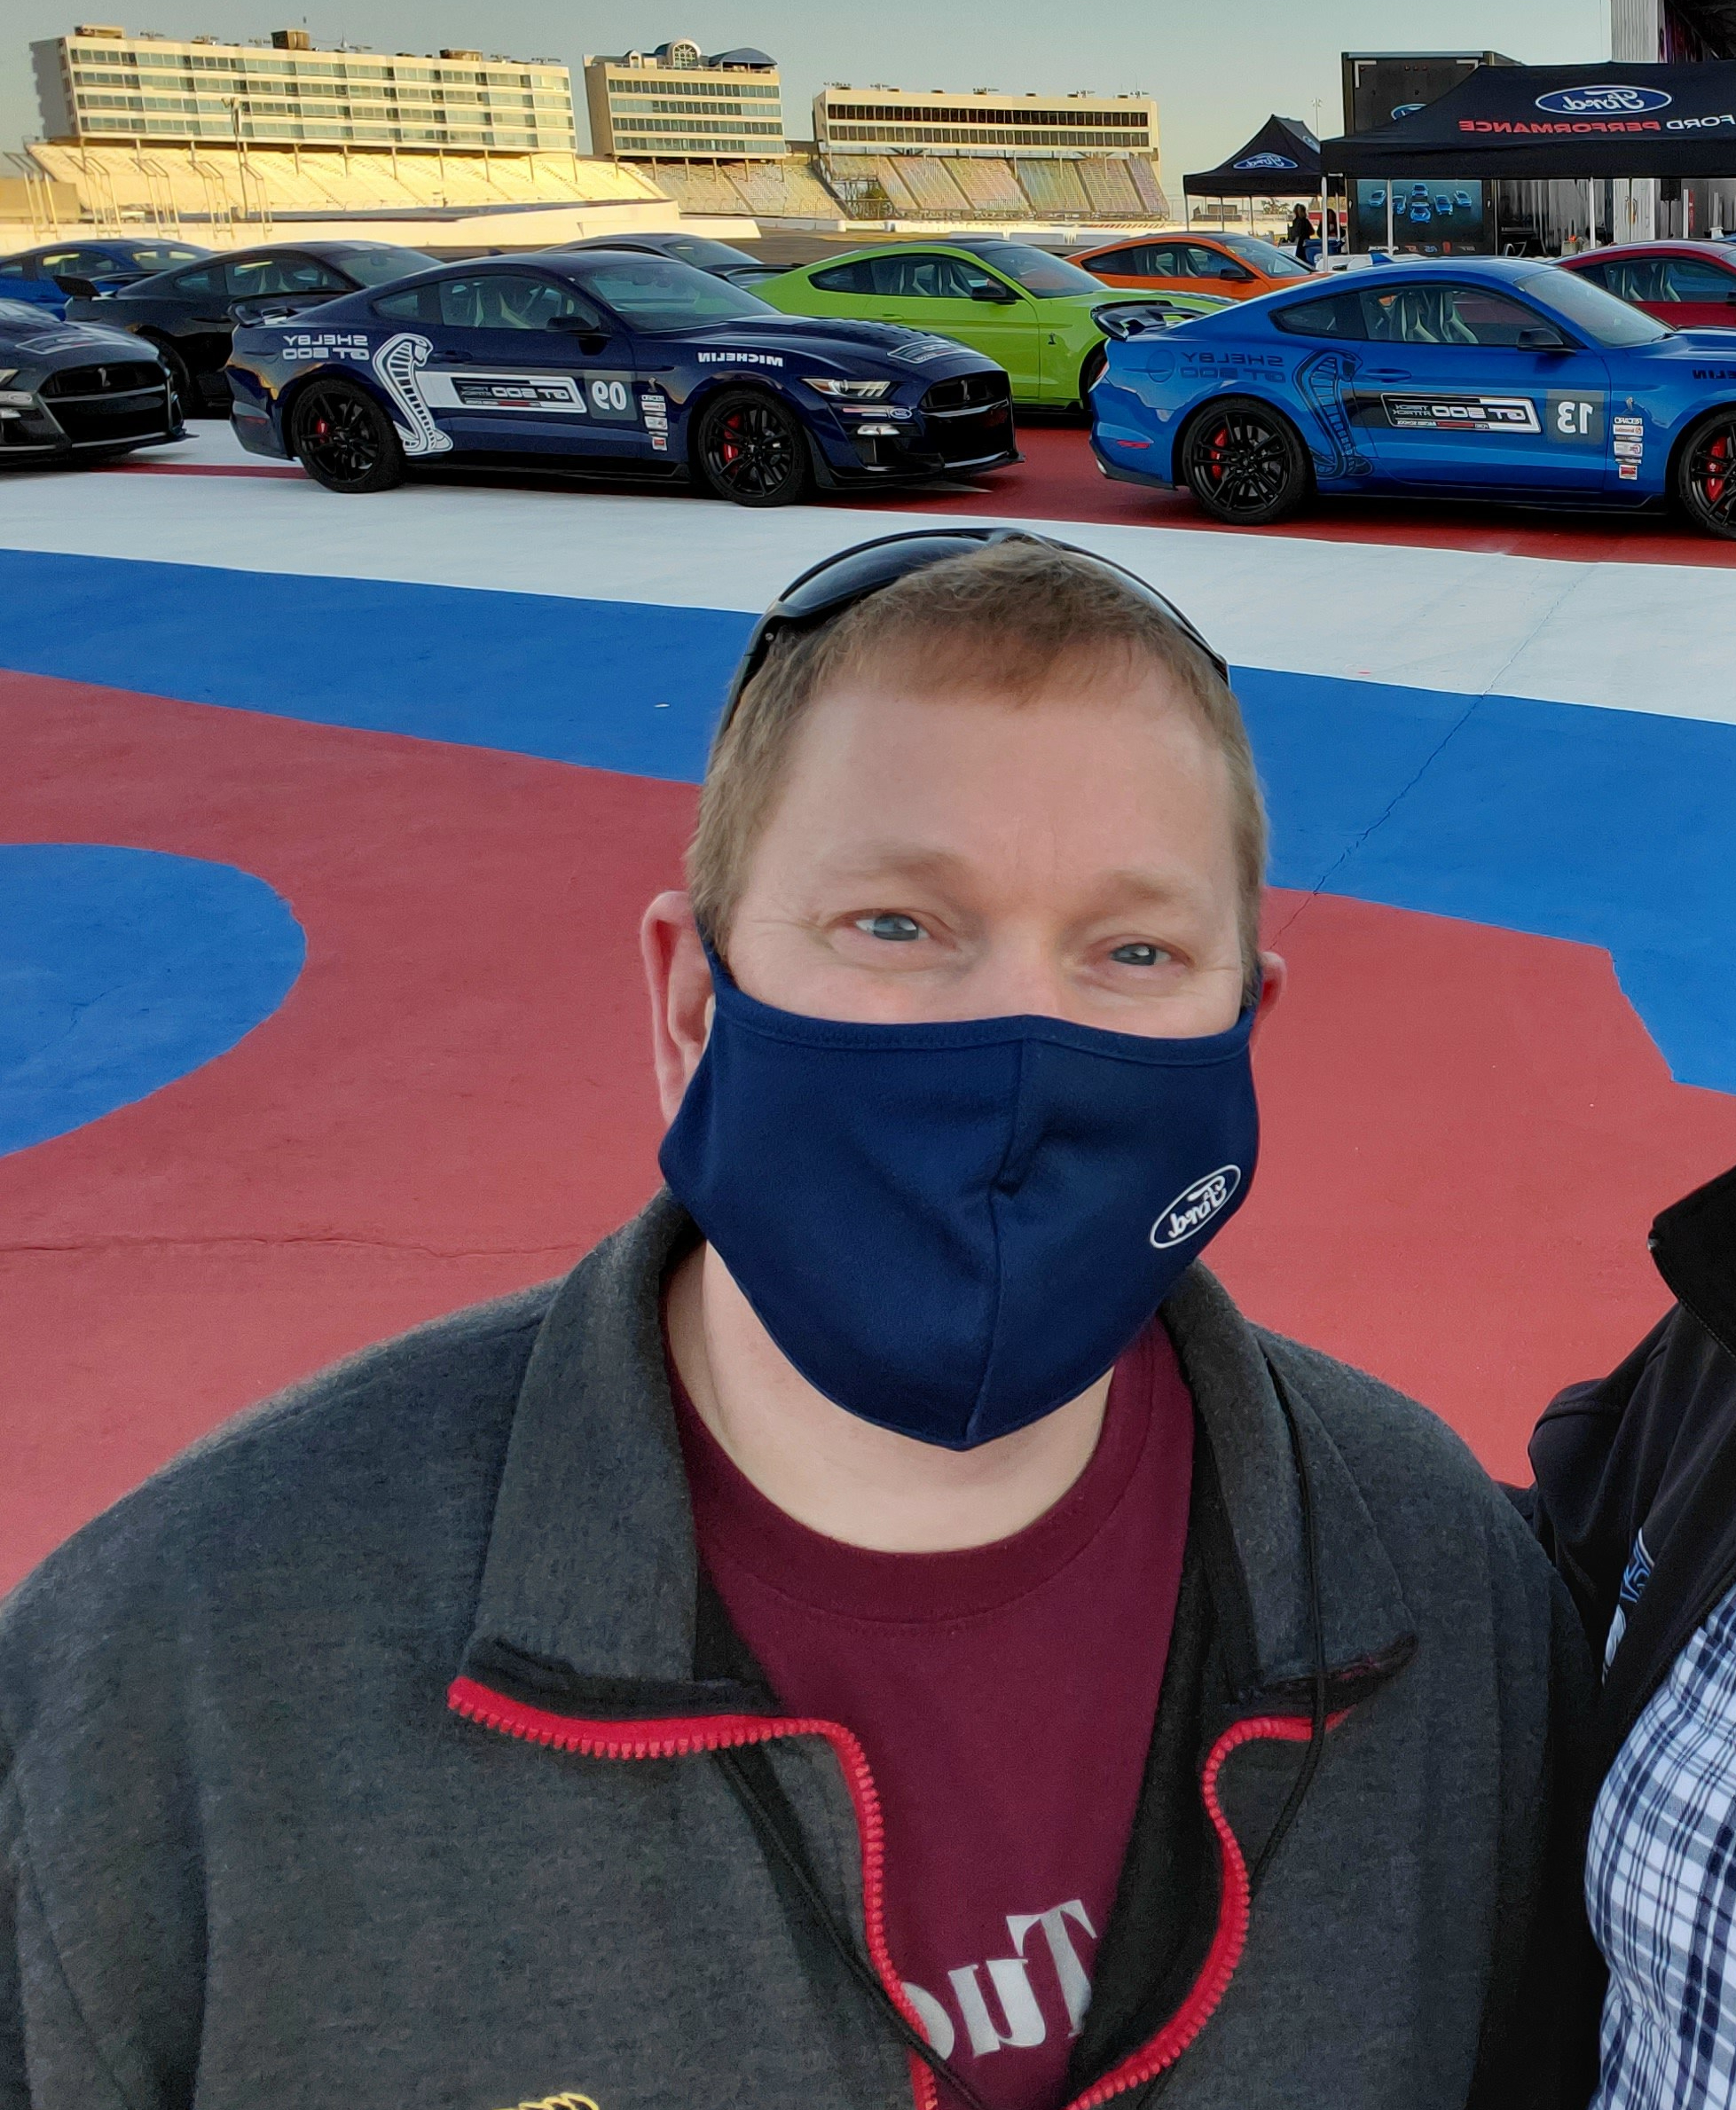 Ofc. Matt at the SHELBY GT 500 North American Track Tour in Charlotte North Carolina, Oct 19 2020